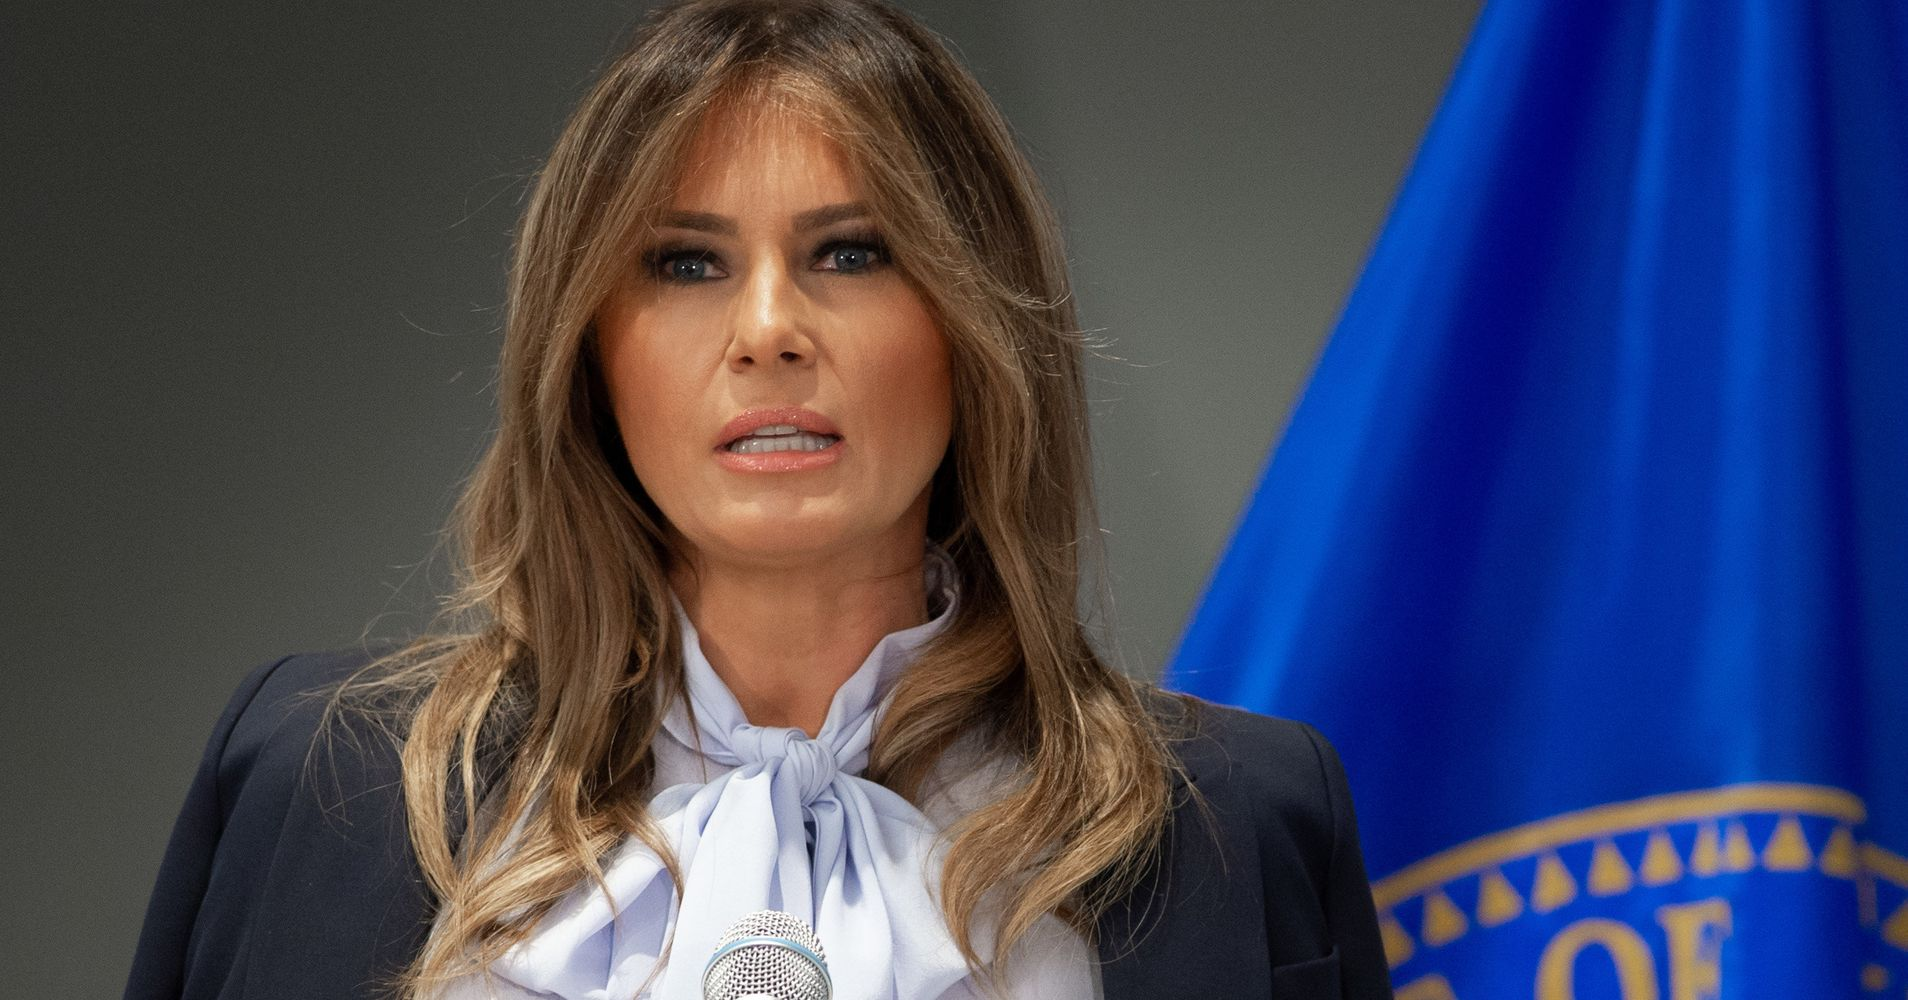 Melania Trump Is Planning Solo Trip To Africa, And Twitter Users Relish The Irony